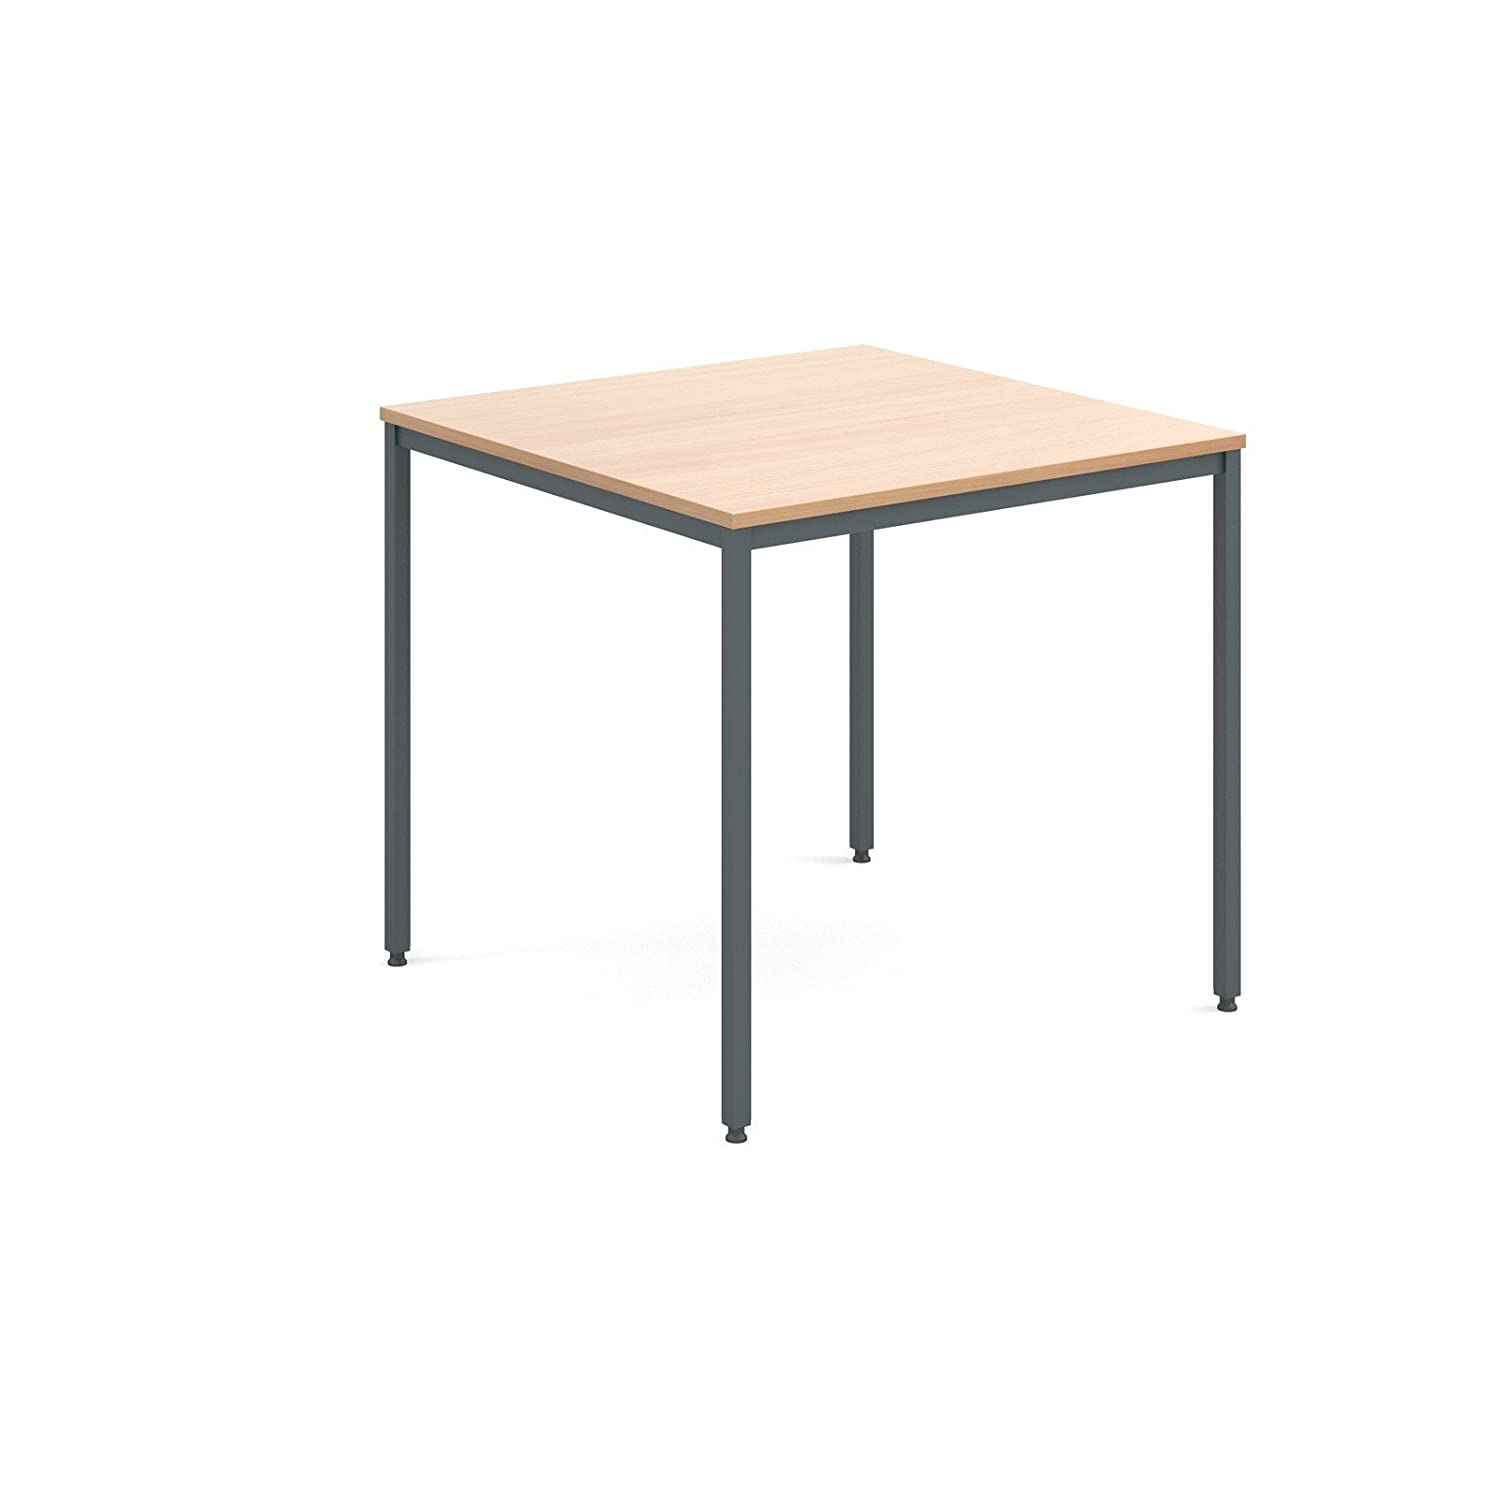 Flexi table 800 Graphite frame - Beech Dams